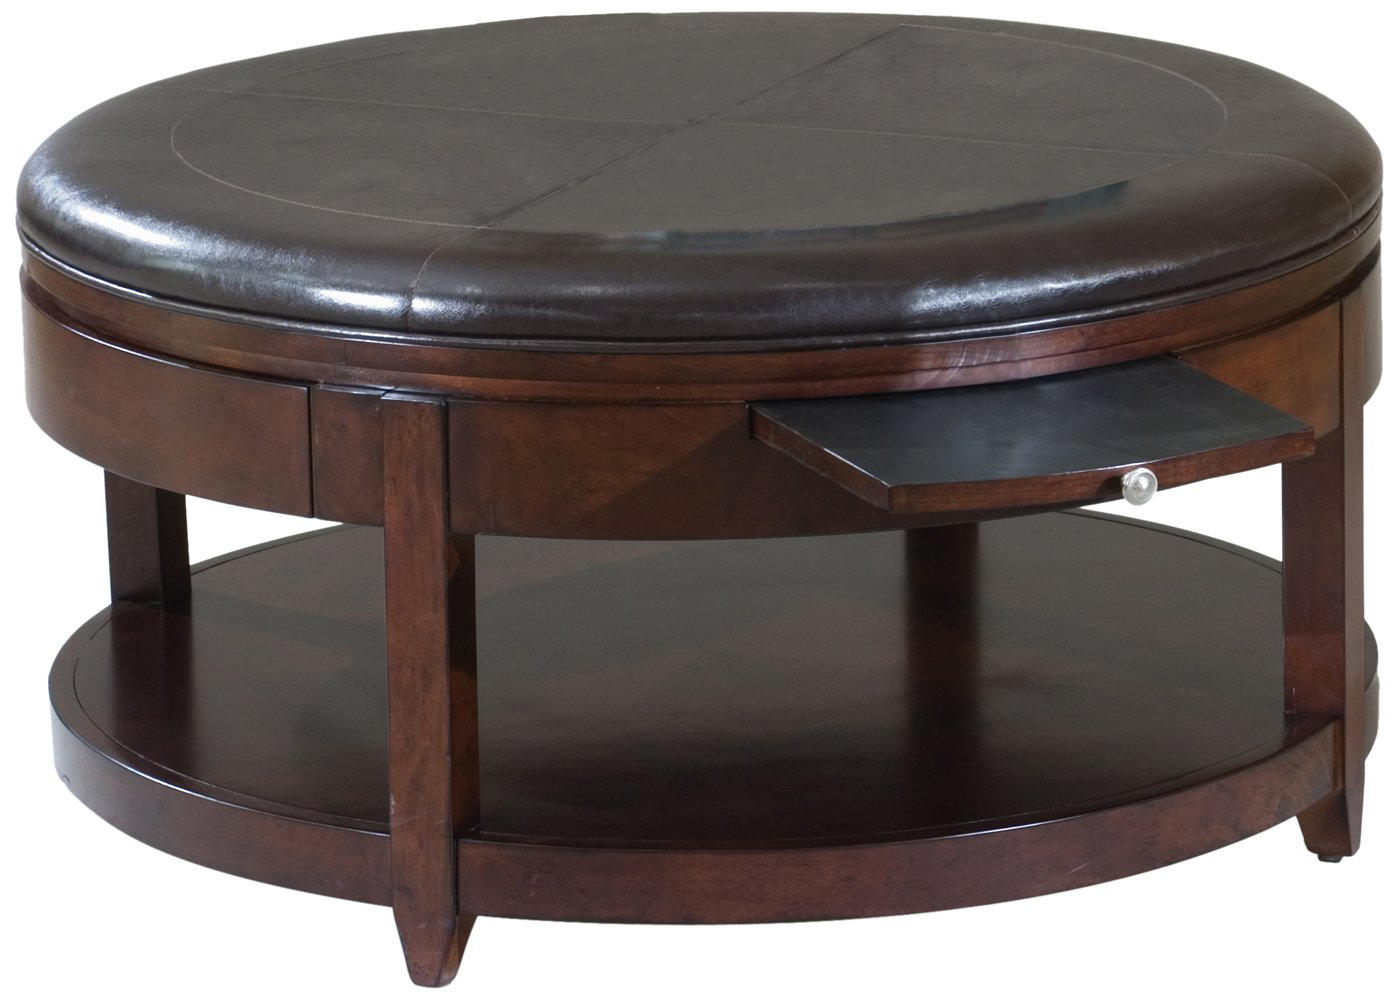 Large round tufted leather ottomans with storage olivia 39 s place Ottoman coffee table trays